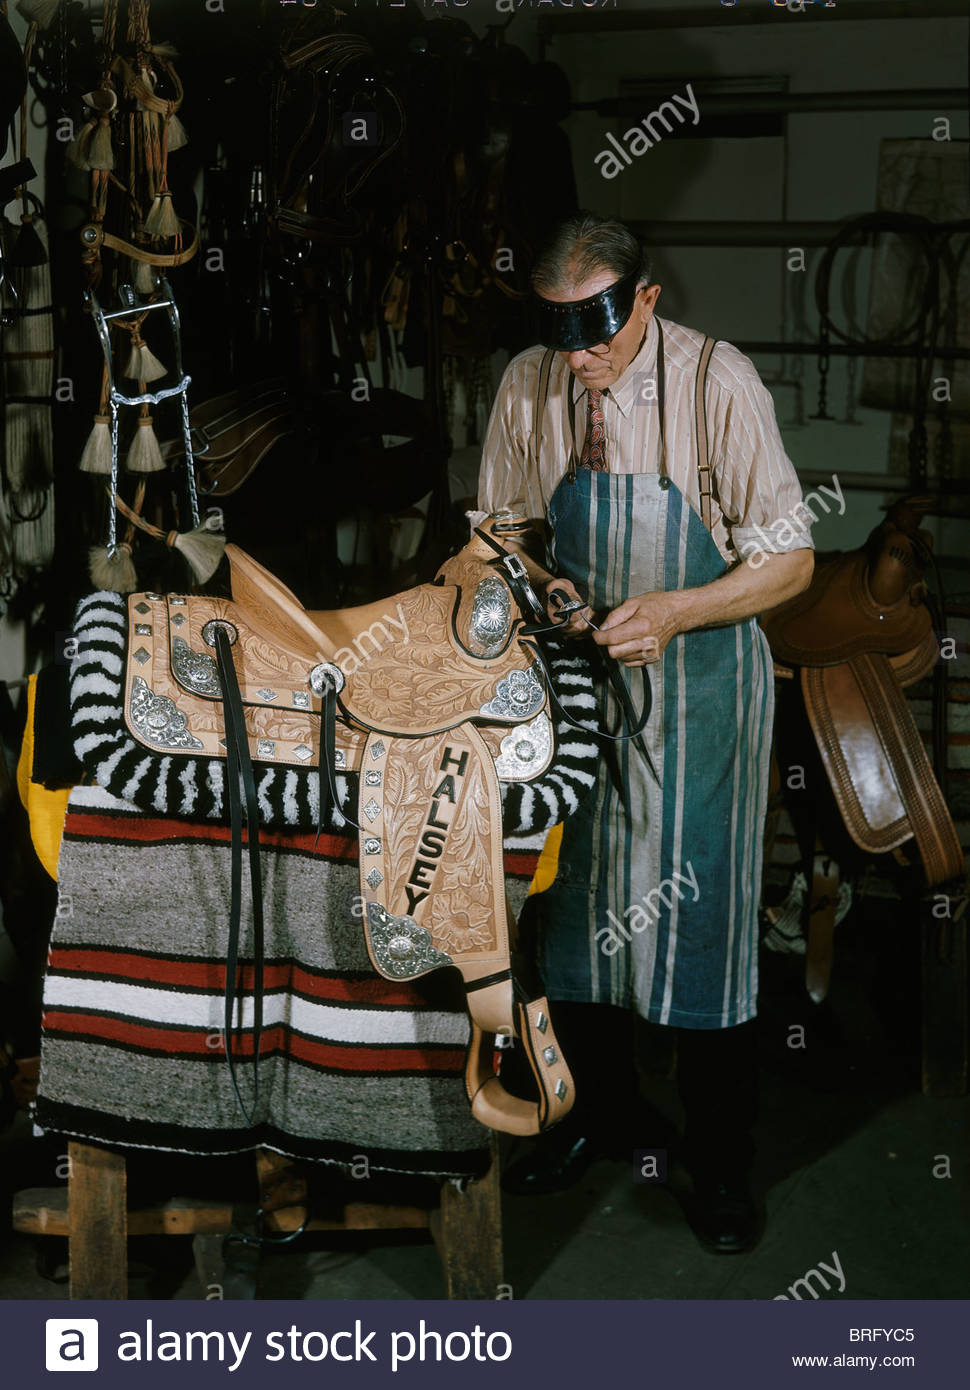 A craftsman makes tooled leather saddle with silver ornamentation. - Stock Image